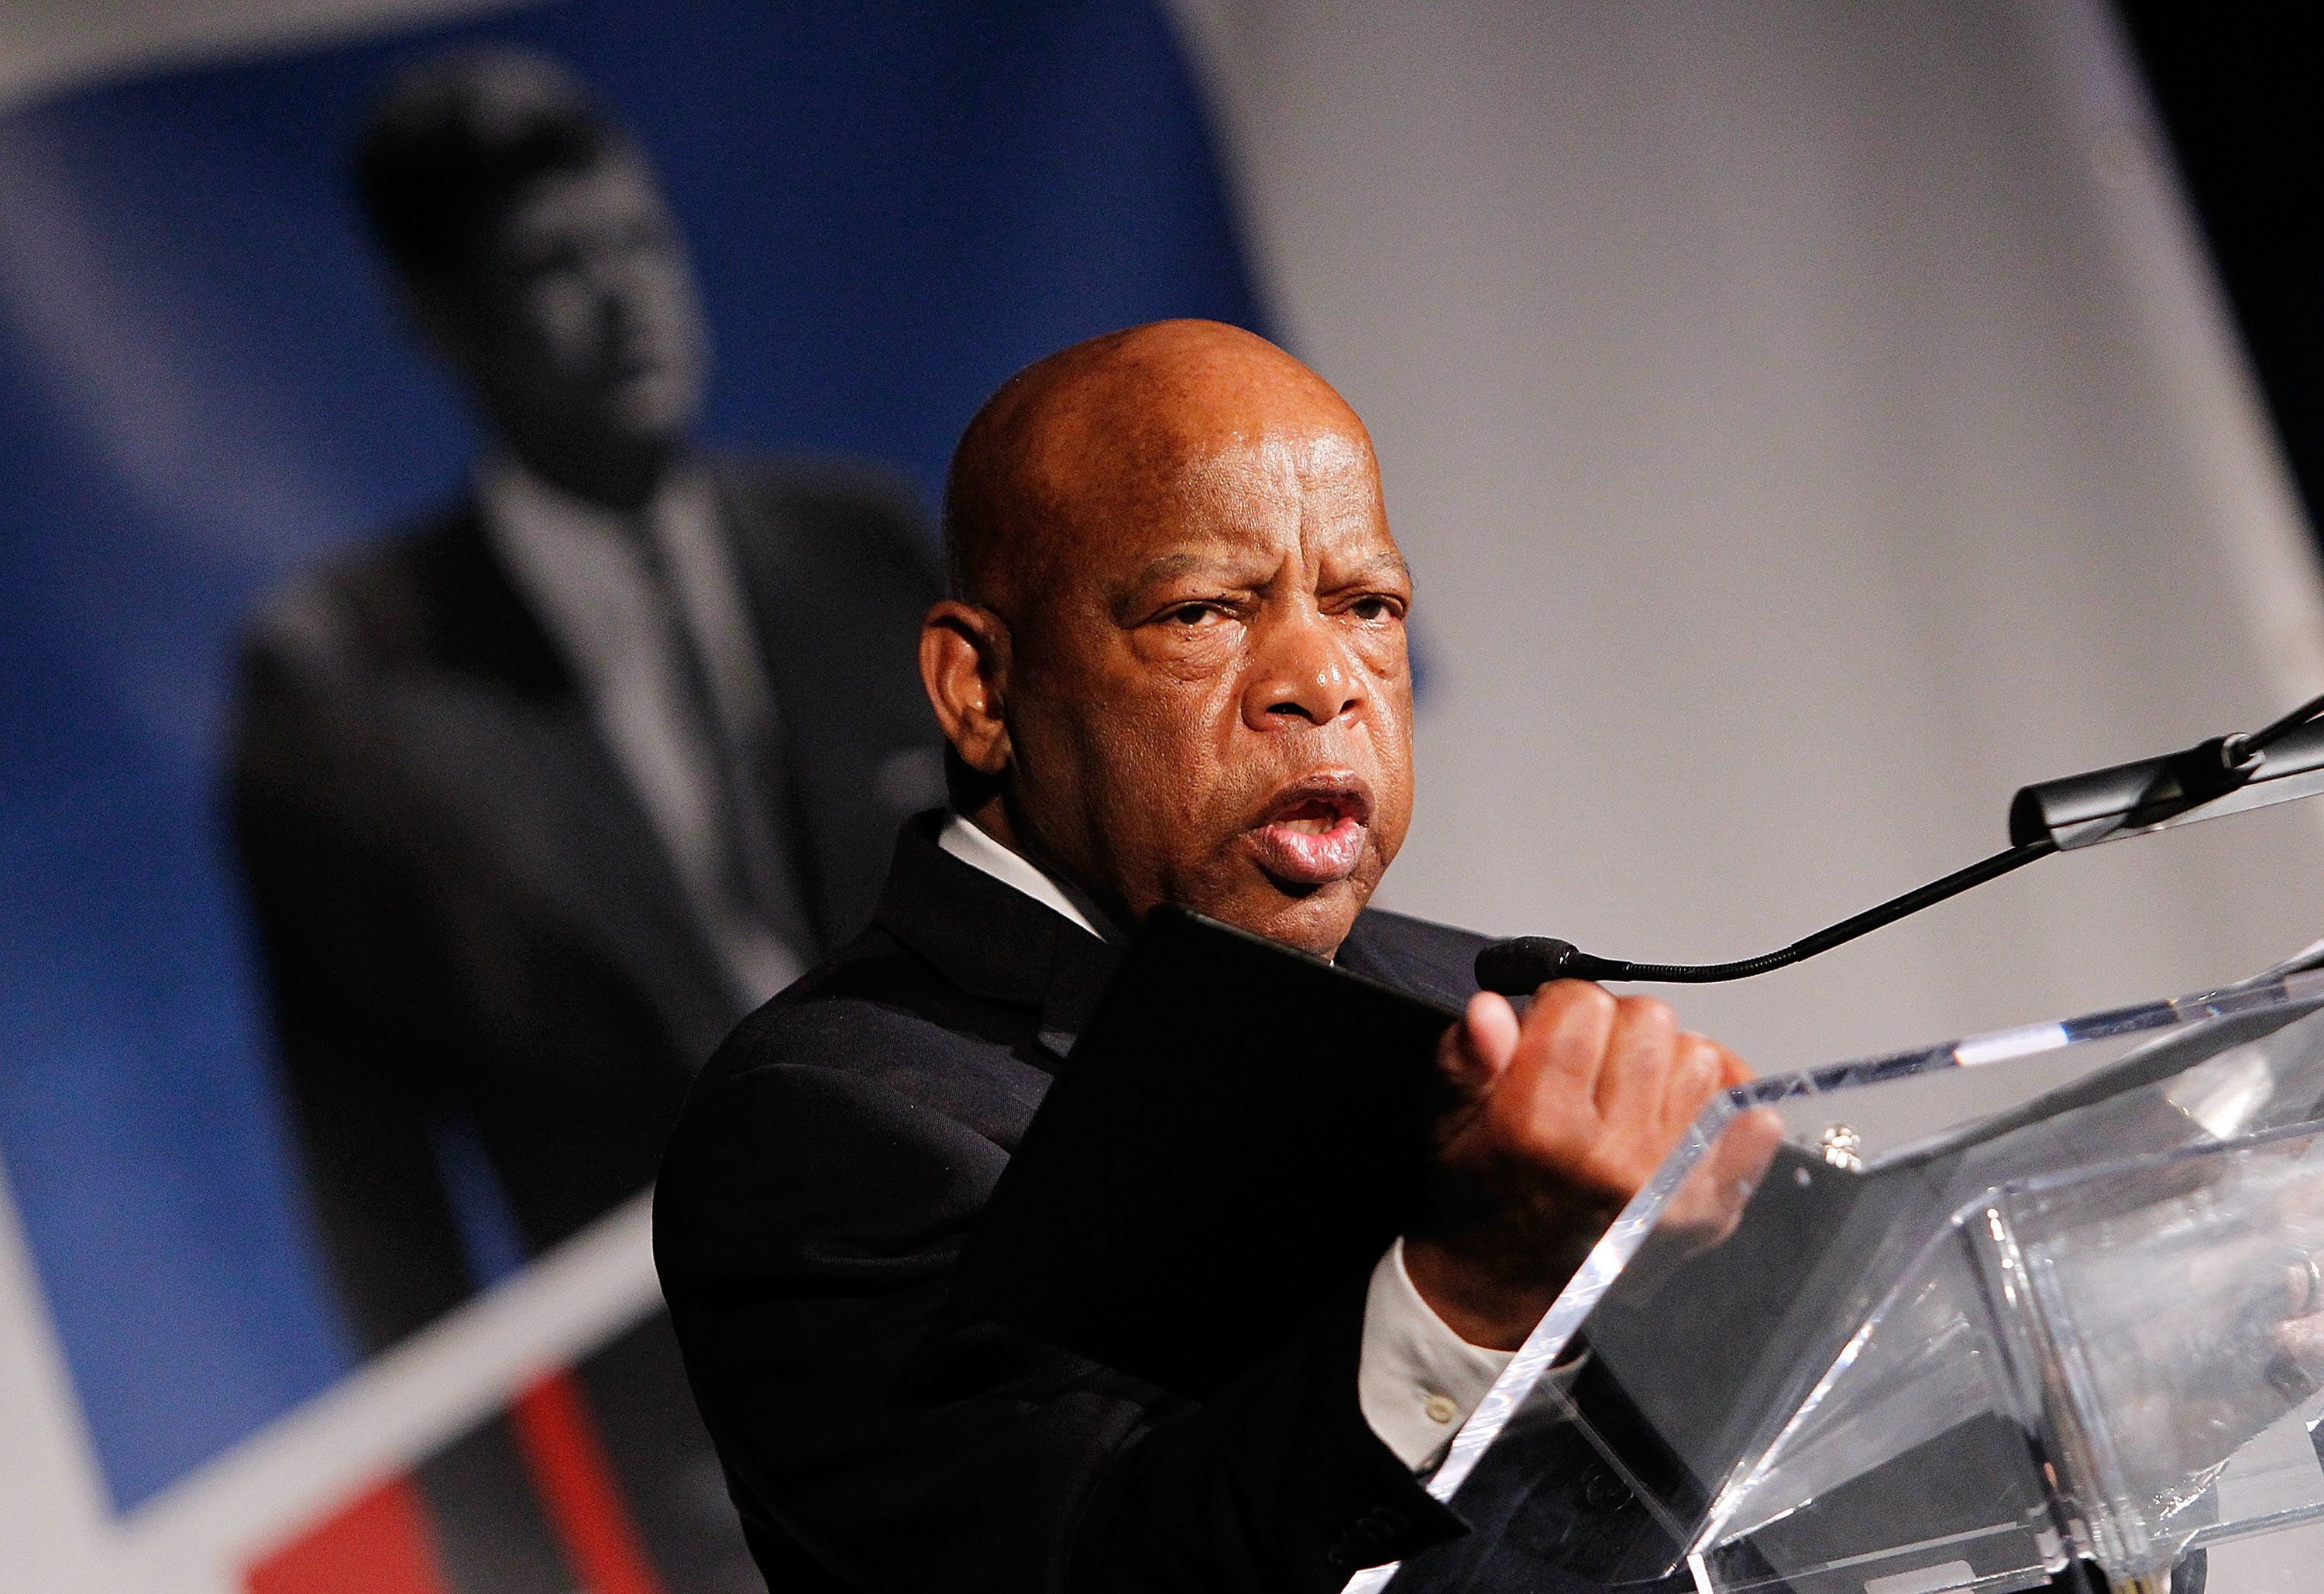 Rep. John Lewis (D-Ga.) speaking at an event in Washington, D.C., in May. He announced on Thursday that he will not attend th